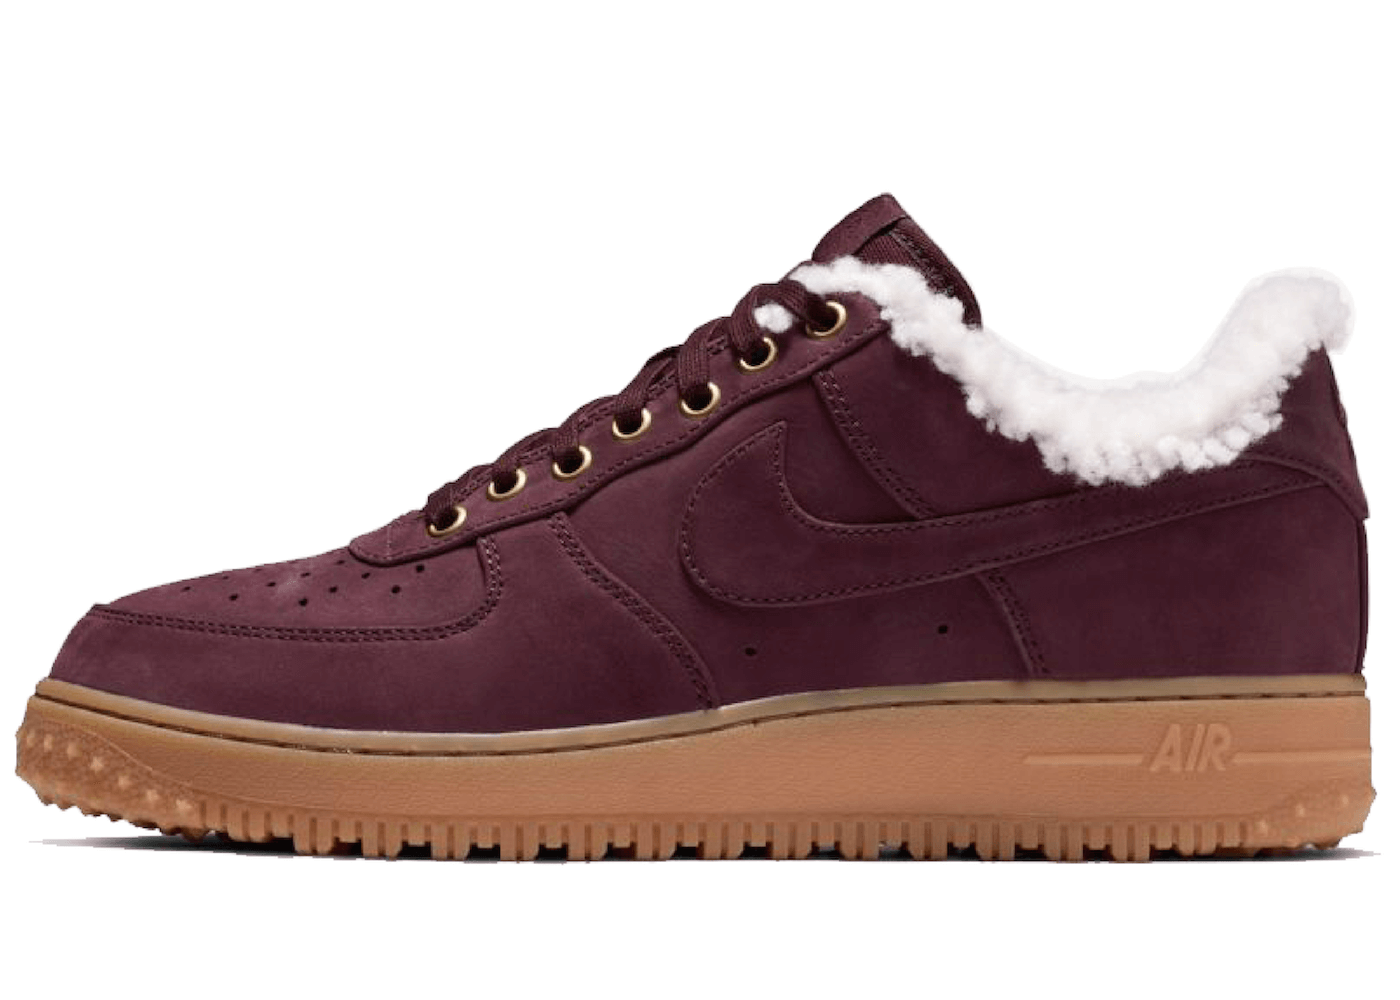 Nike Air Force 1 Winter Burgundy Crushの写真